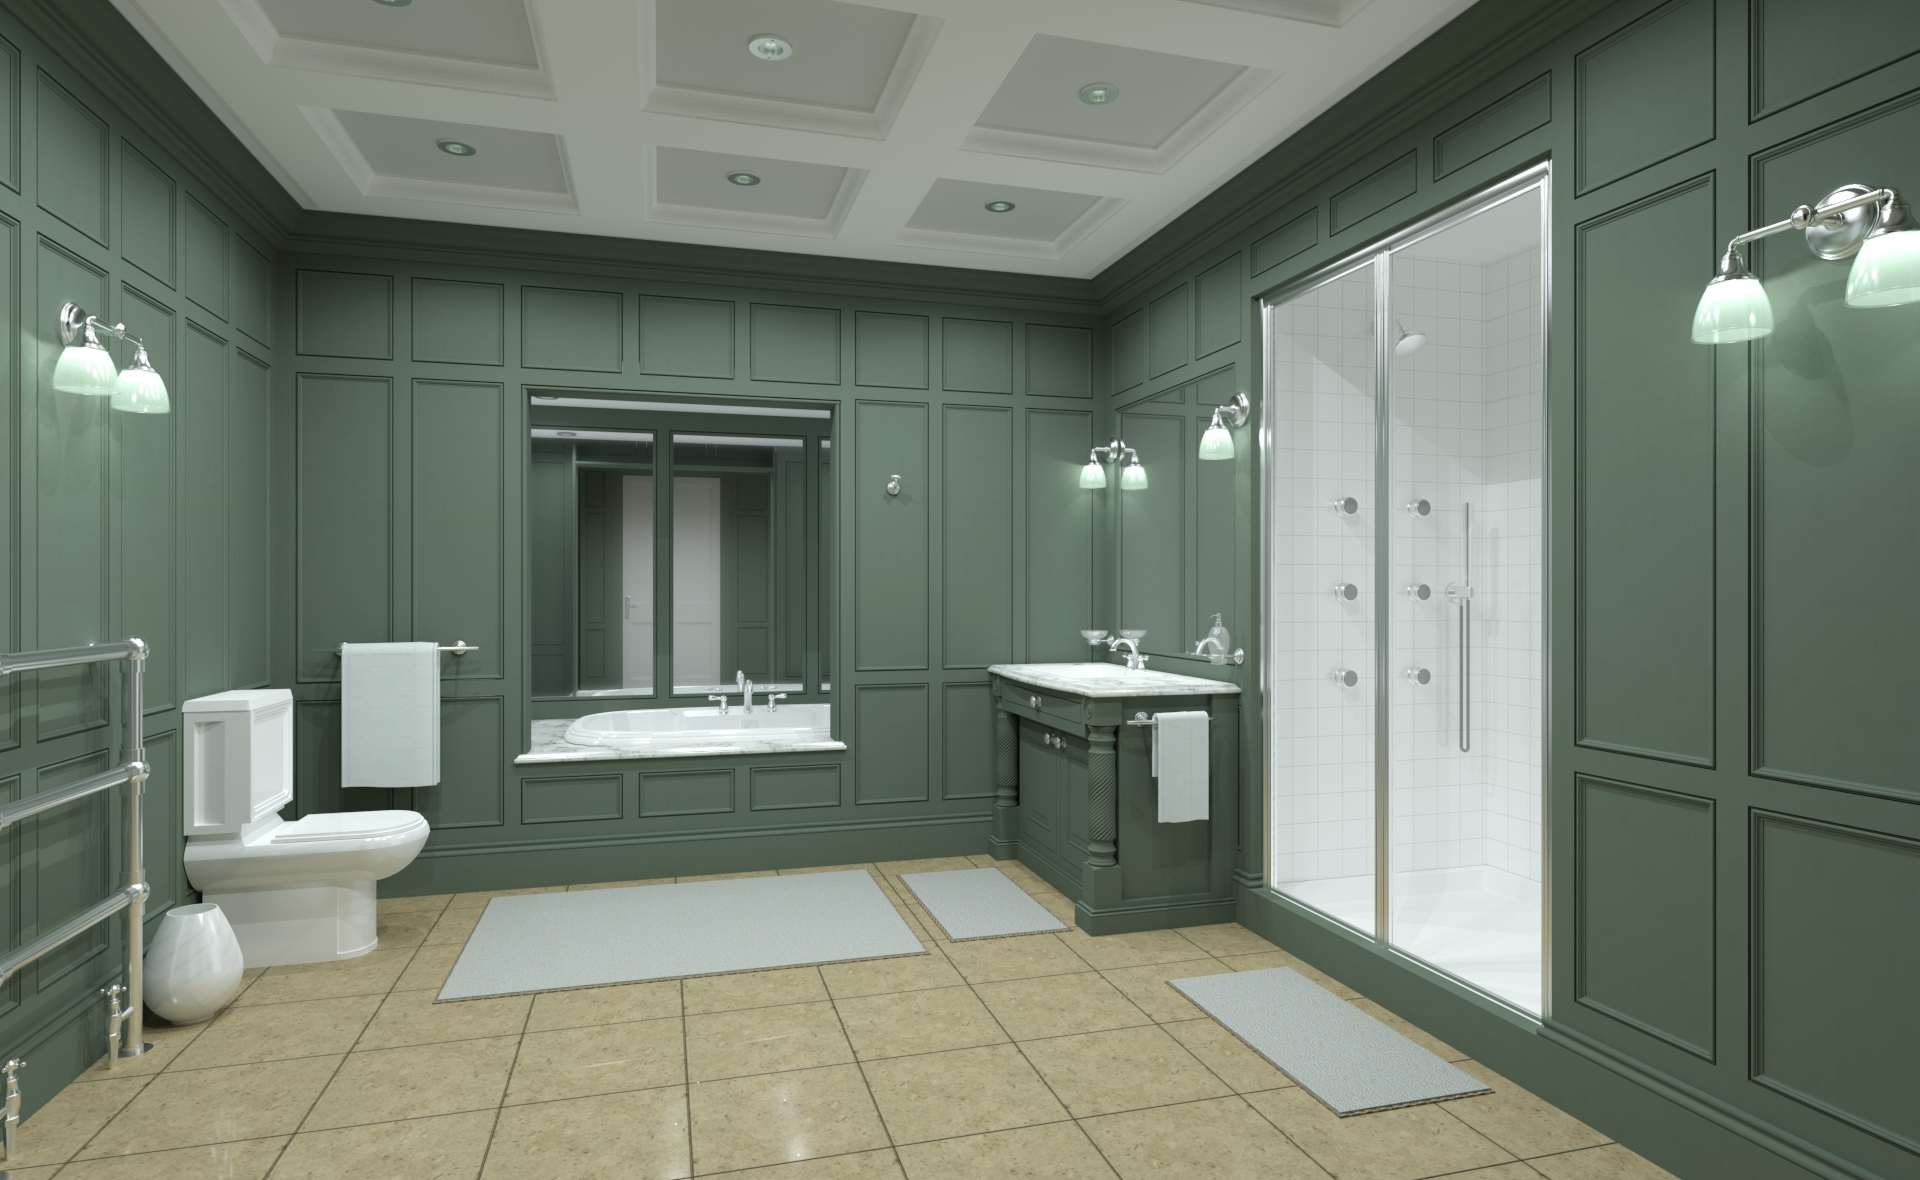 Bespoke  Bathroom CAD Render.jpeg